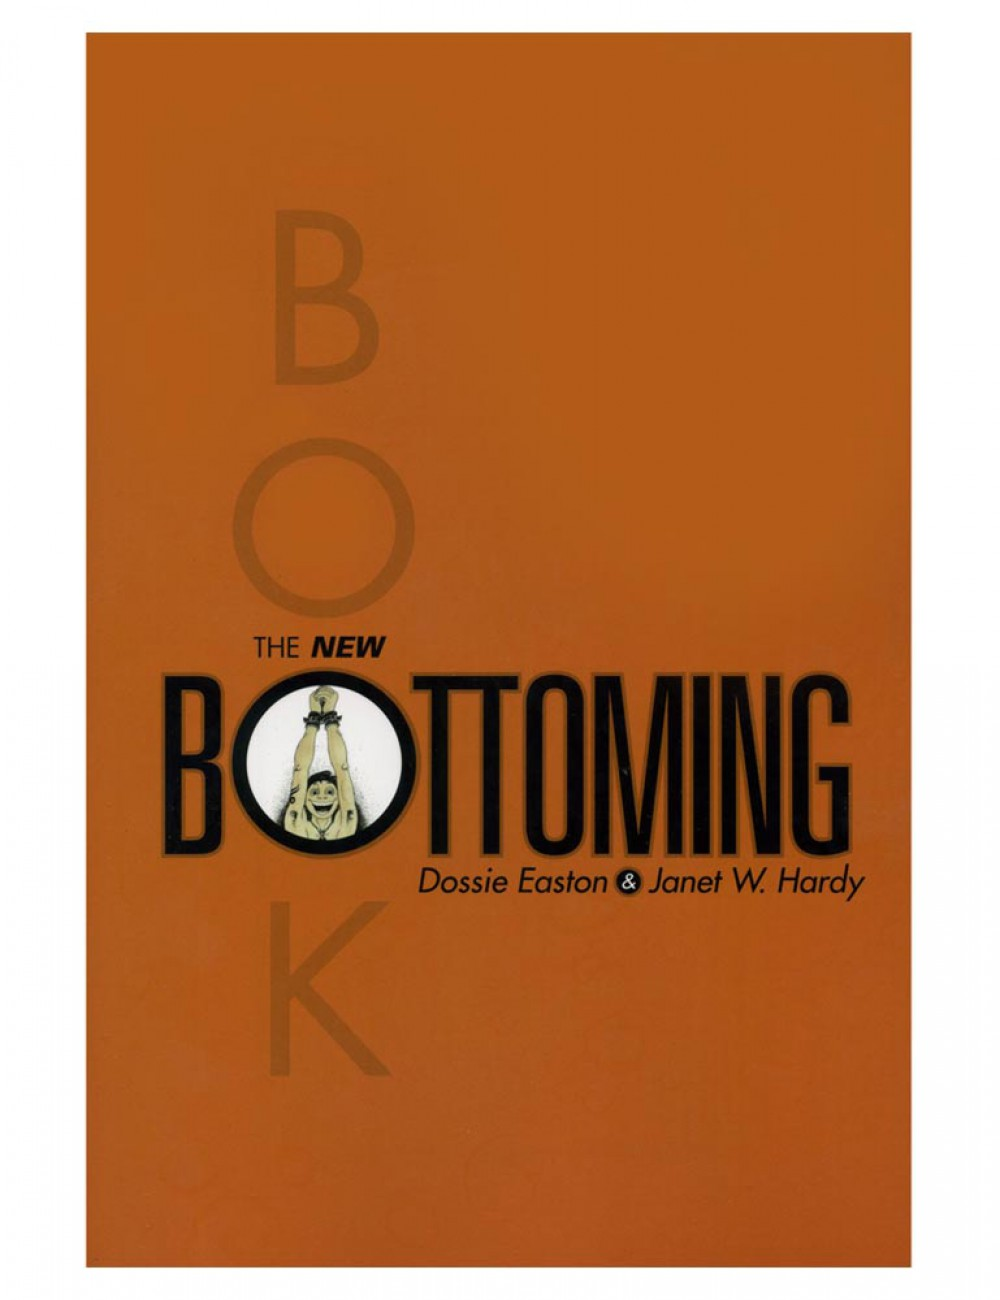 The New Bottoming Book (Easton and Hardy)